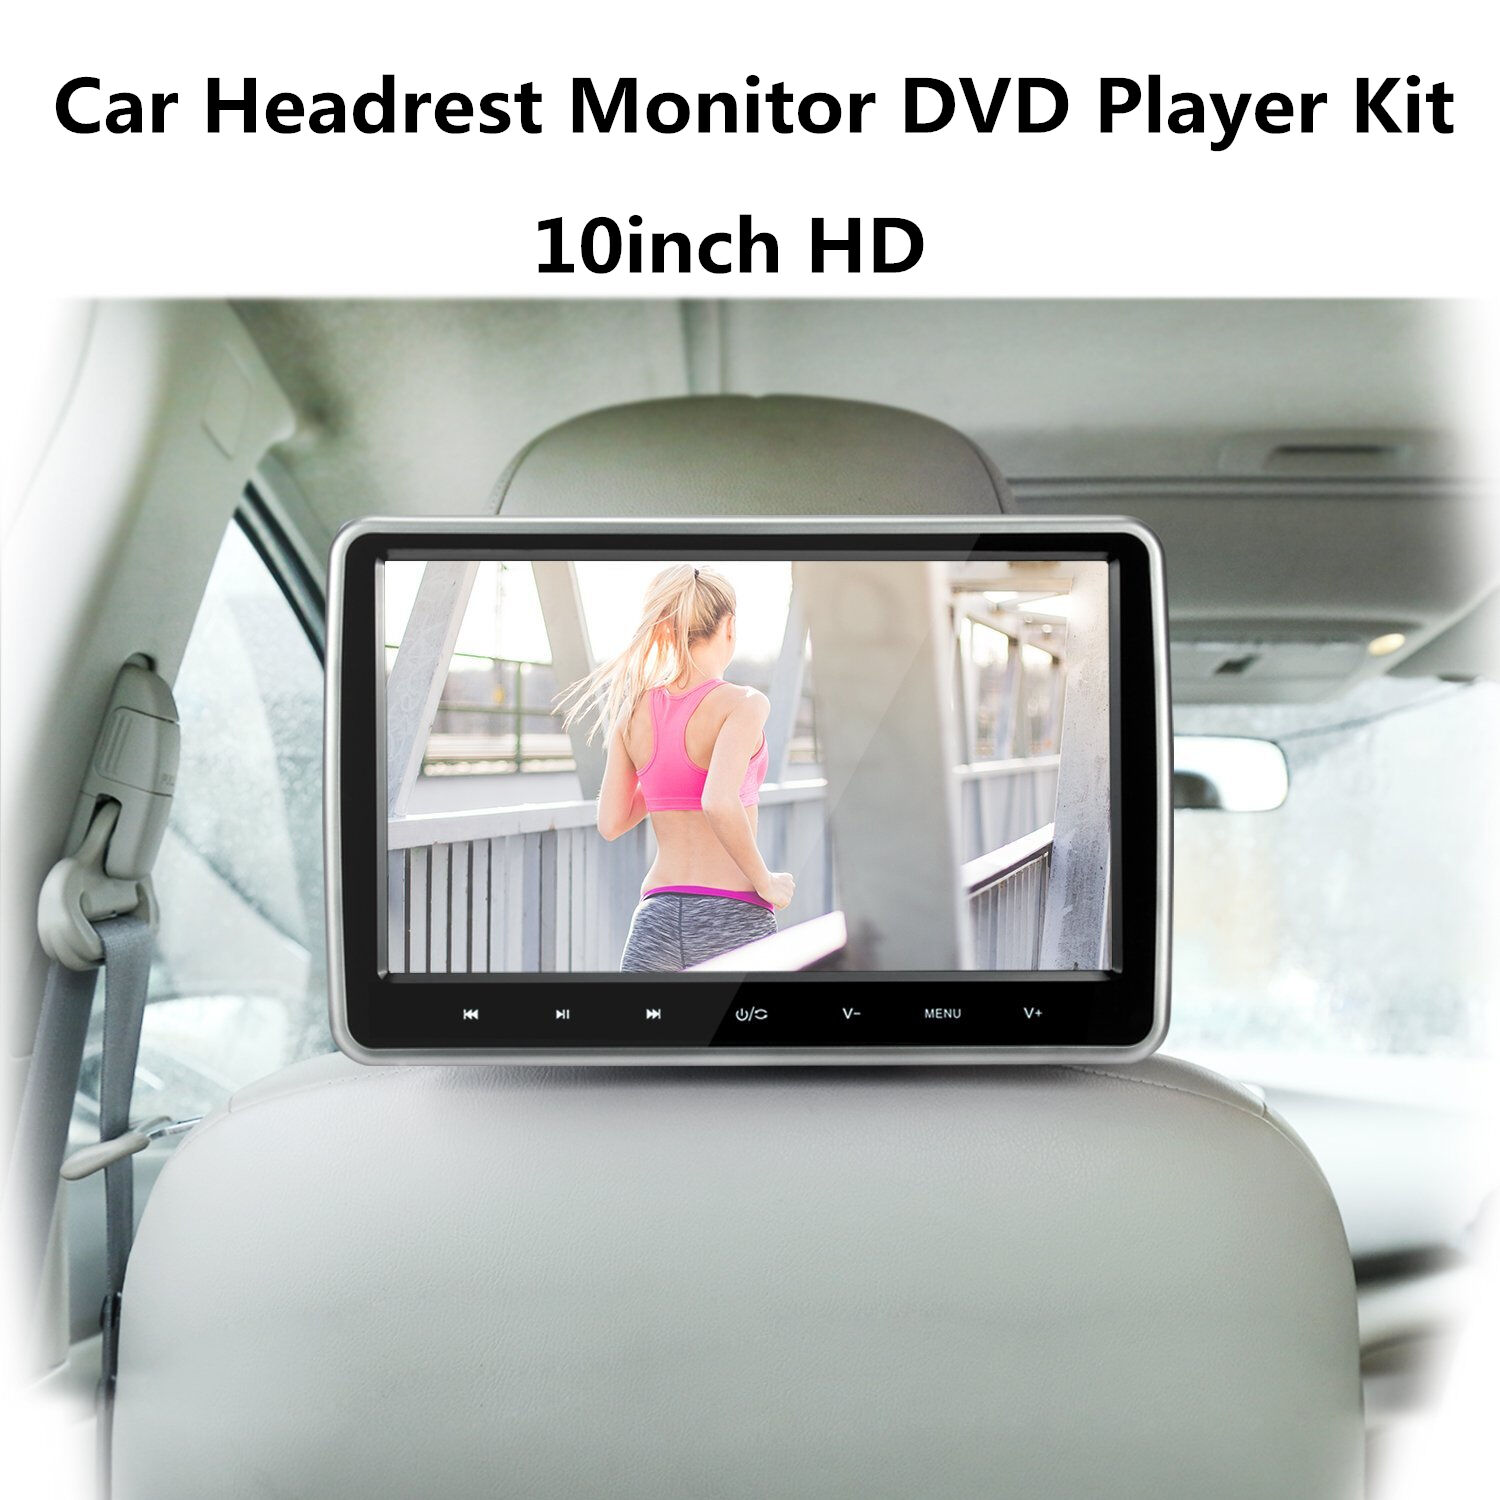 10.1 HD Car Headrest Monitor DVD Player Kit USB/SD/HDMI/FM/Game TFT LCD Screen